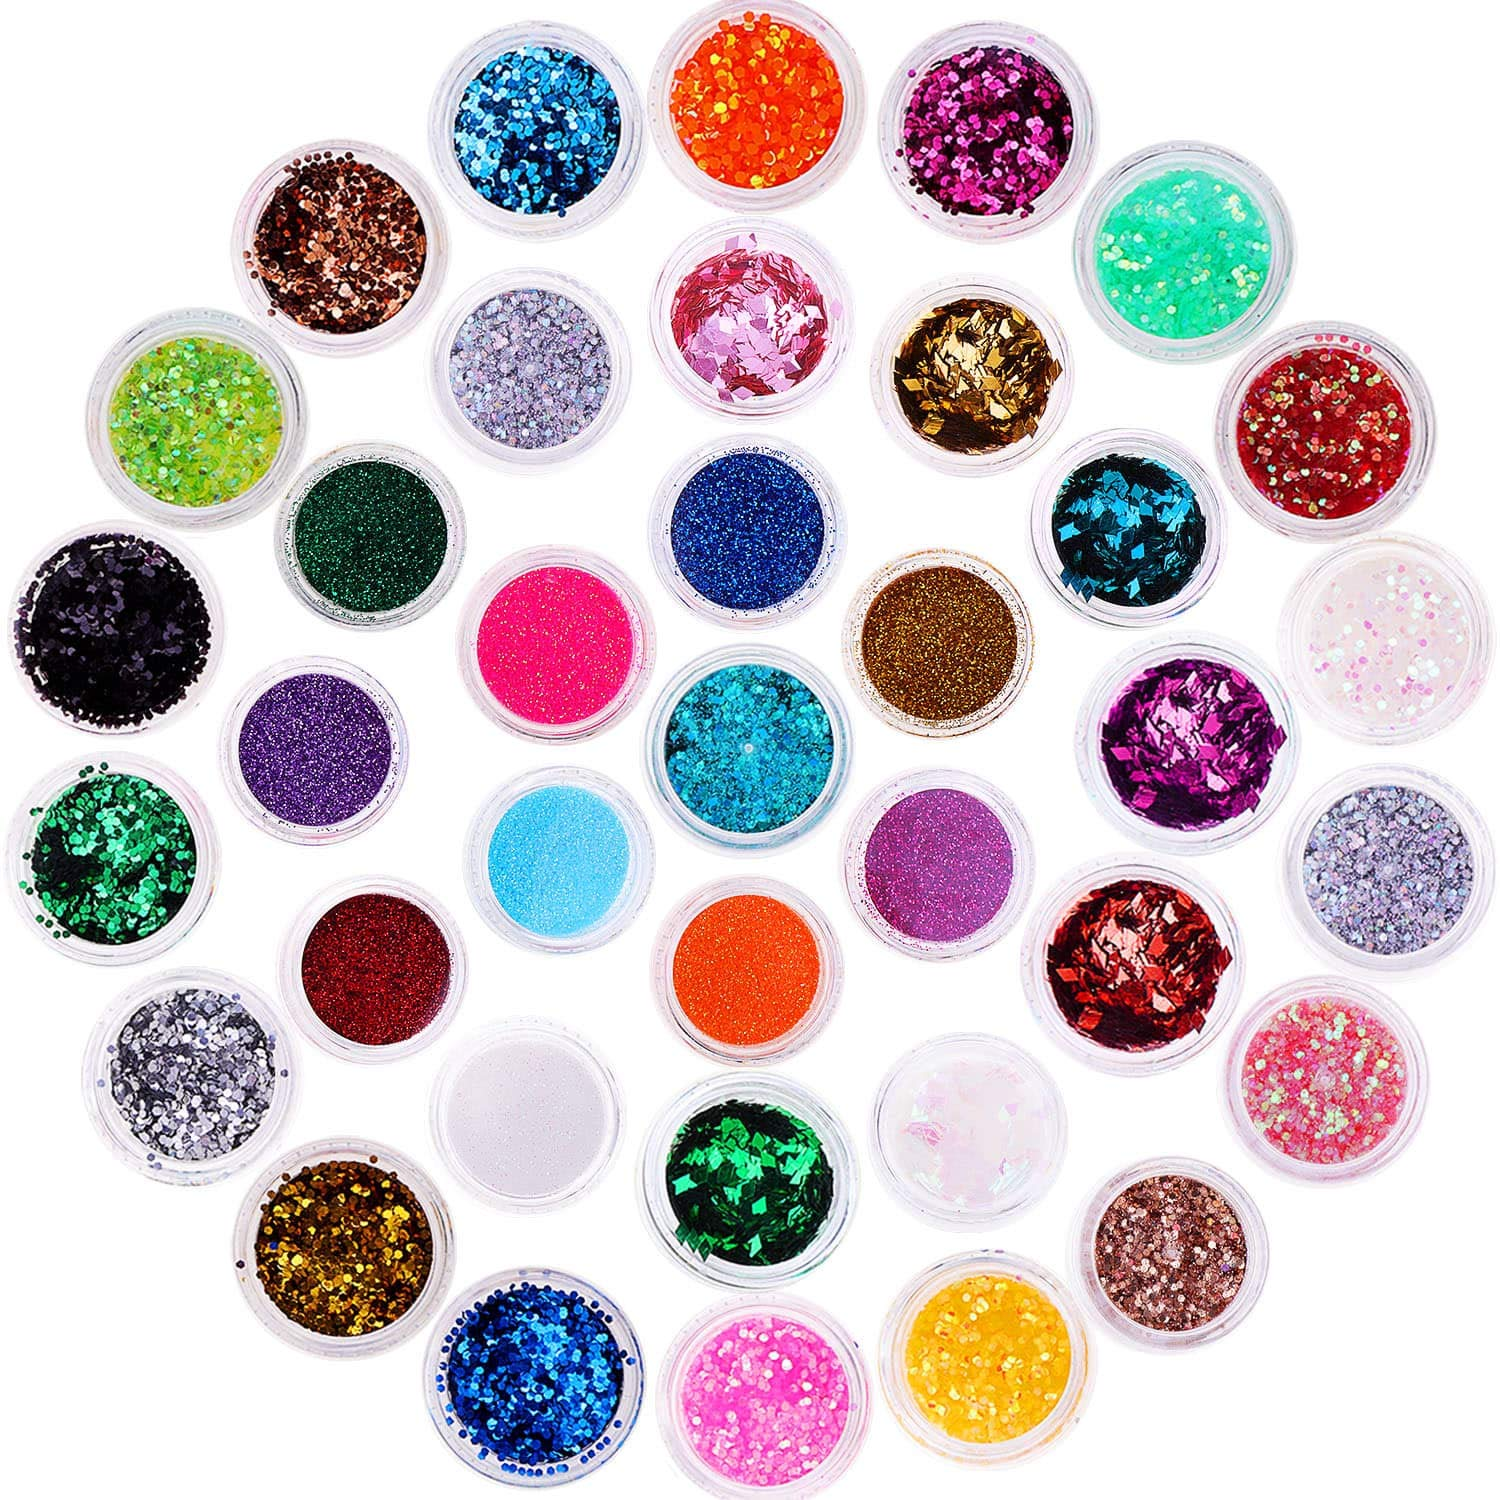 Chunky Glitter, Anezus 67Pcs Holographic Glitter with Fine Festival Glitter in Different Sizes and Dotting Tools for Cosmetic Nail Art Hair Craft and Slime by anezus